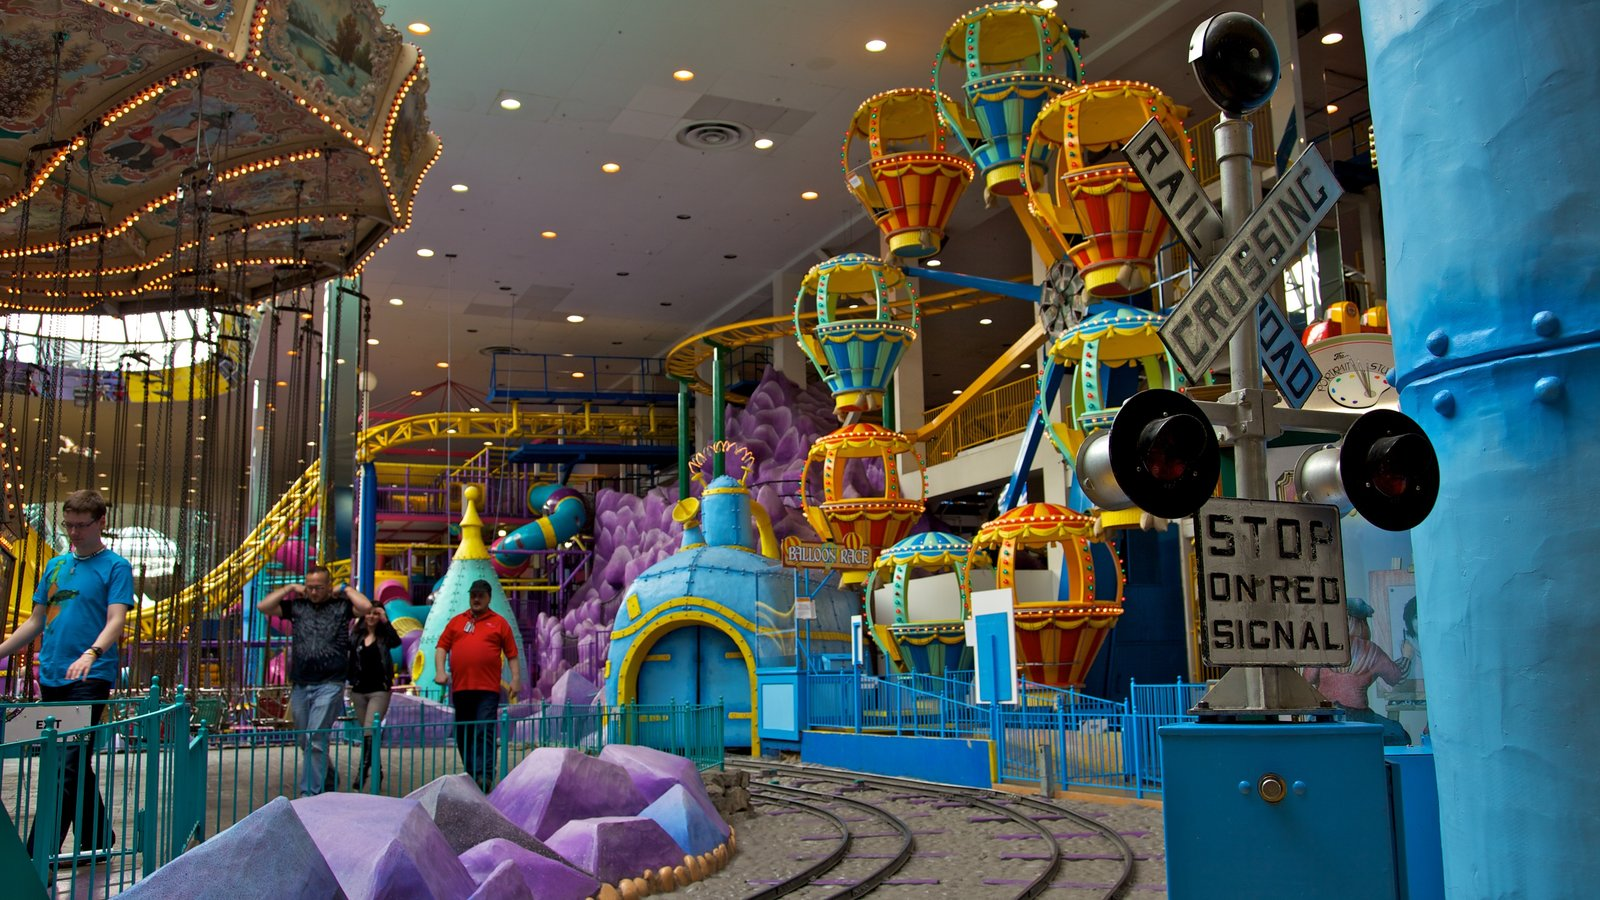 West Edmonton Mall which includes modern architecture, railway items and interior views